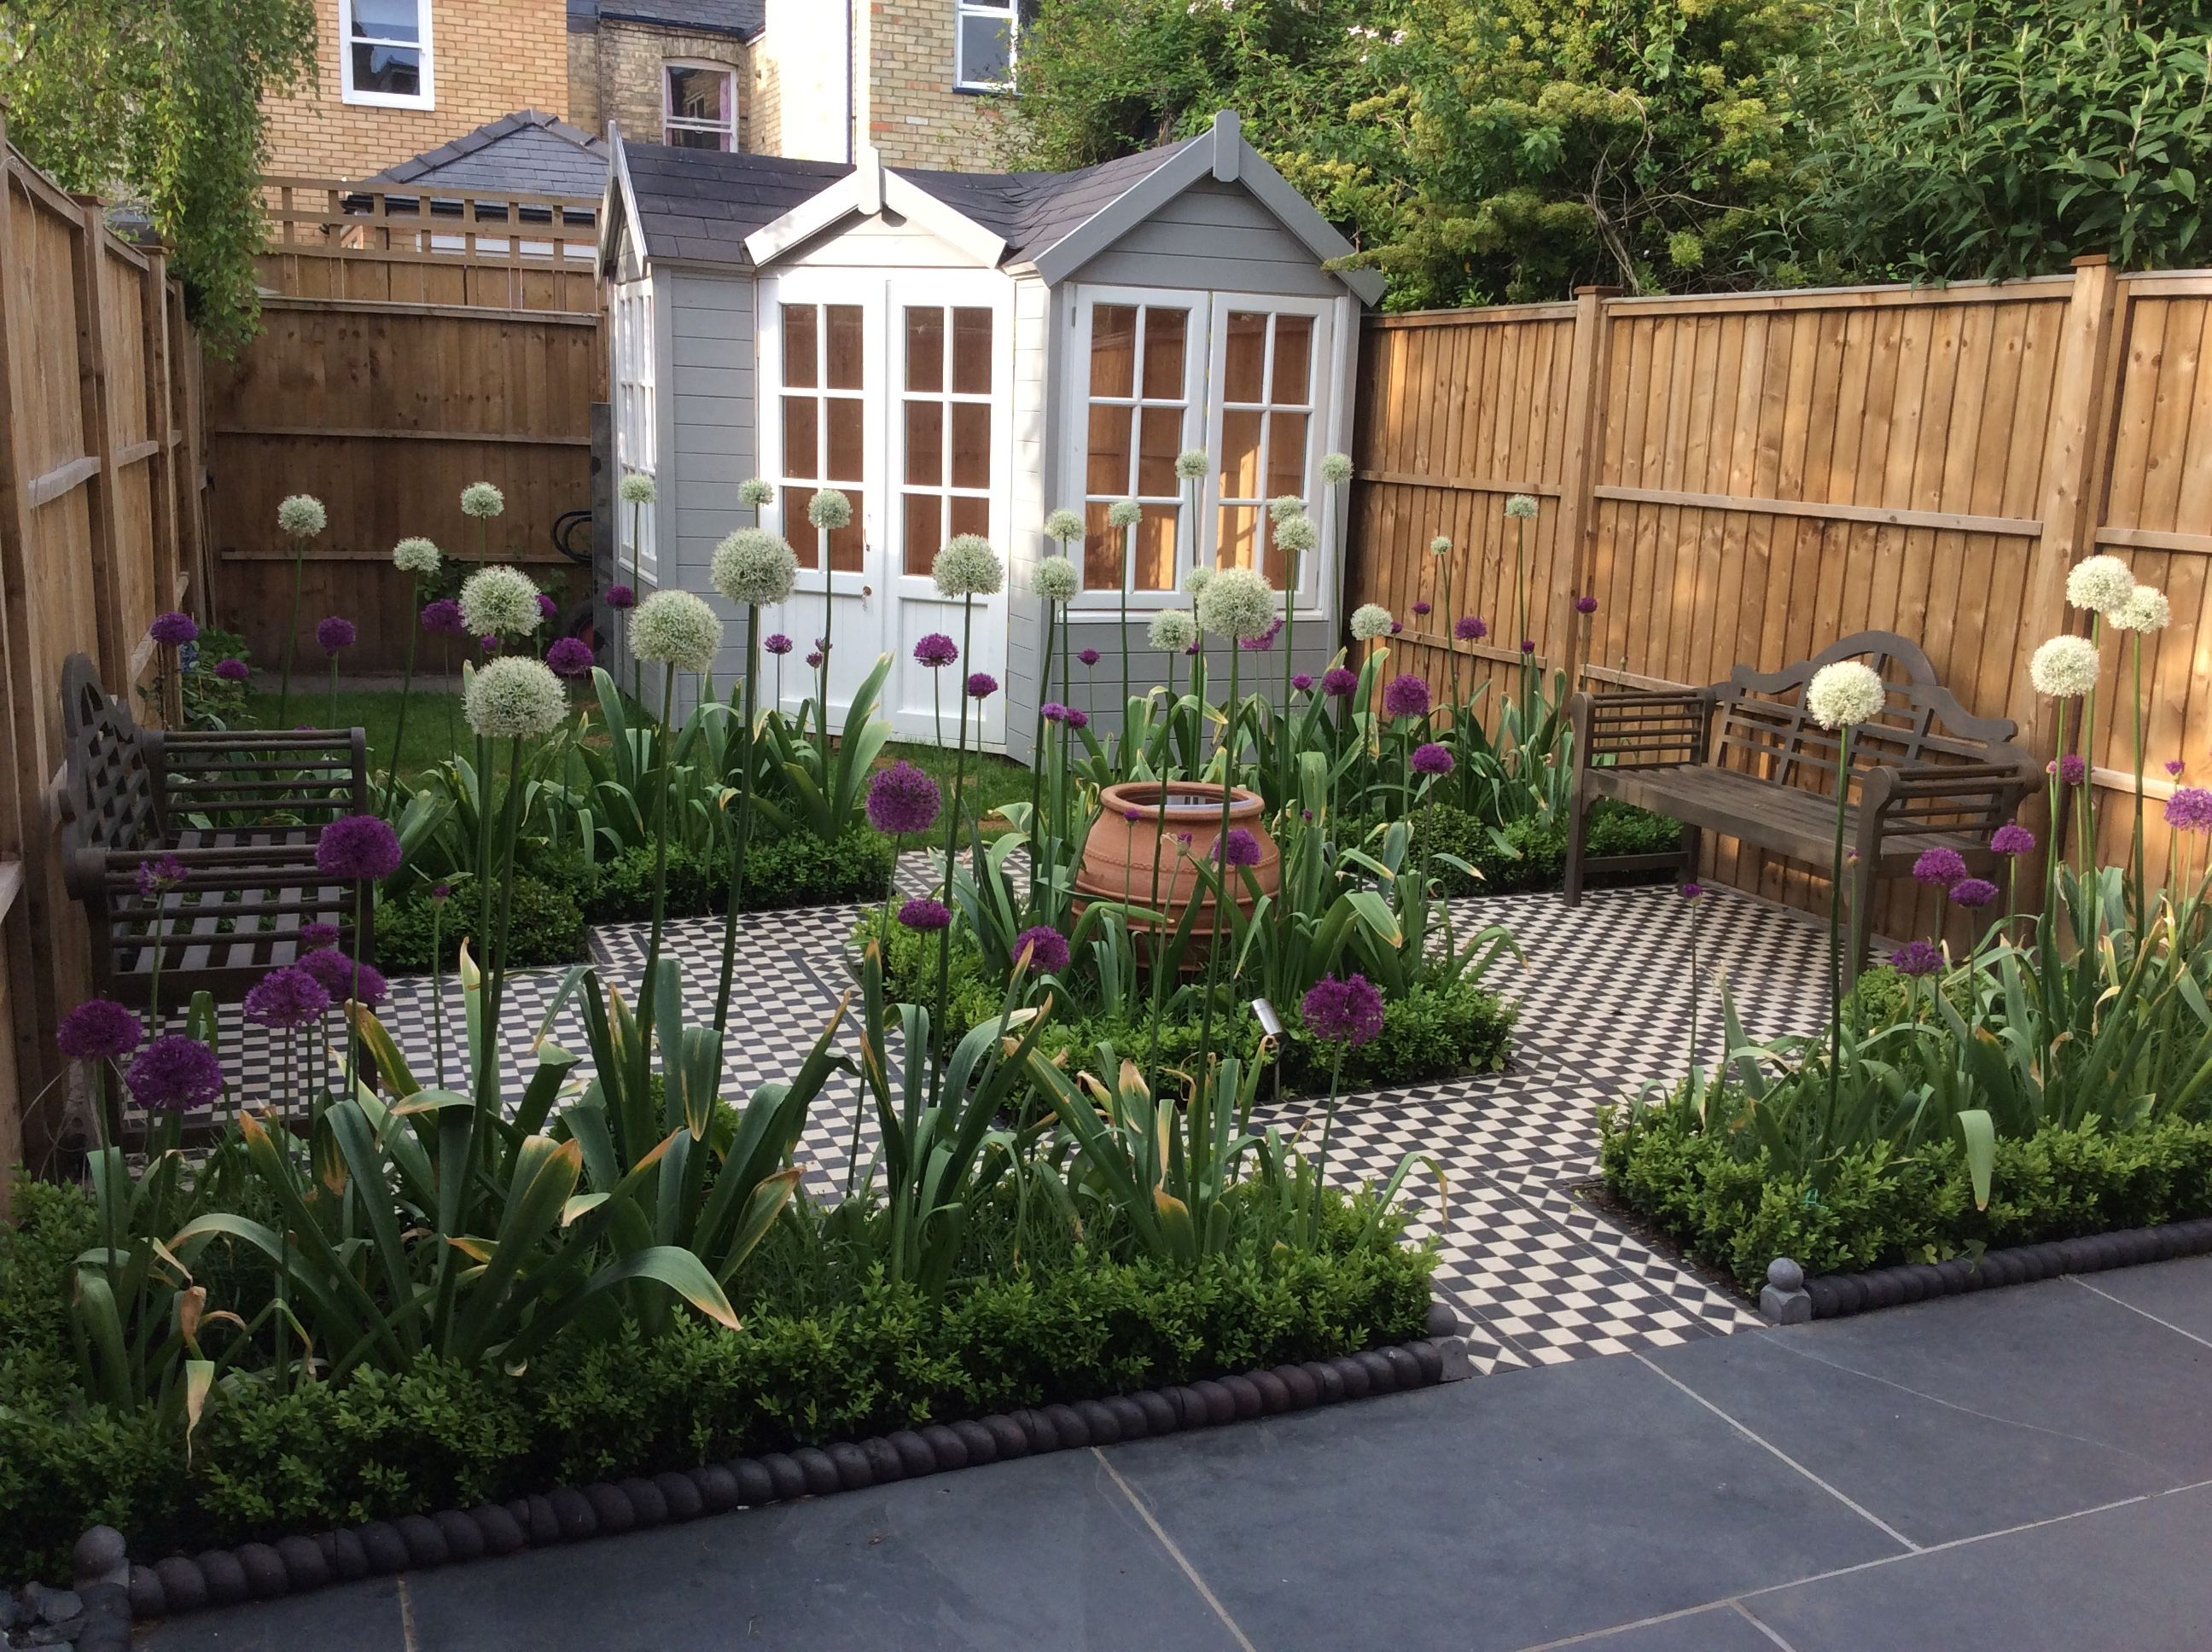 Small back garden of Victorian terraced house | Small back ...